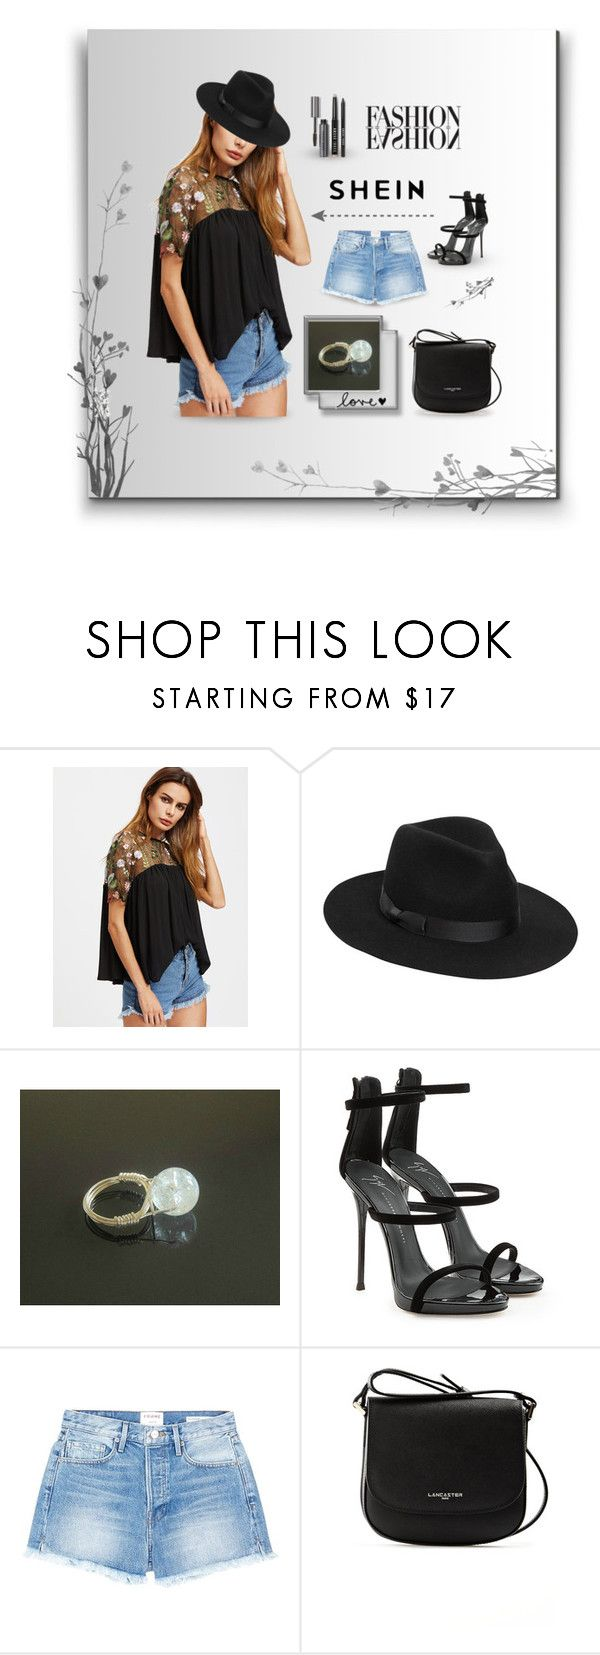 SheIn by styledonna on Polyvore featuring moda, Frame, Giuseppe Zanotti, Lancaster, Lack of Color and Bobbi Brown Cosmetics